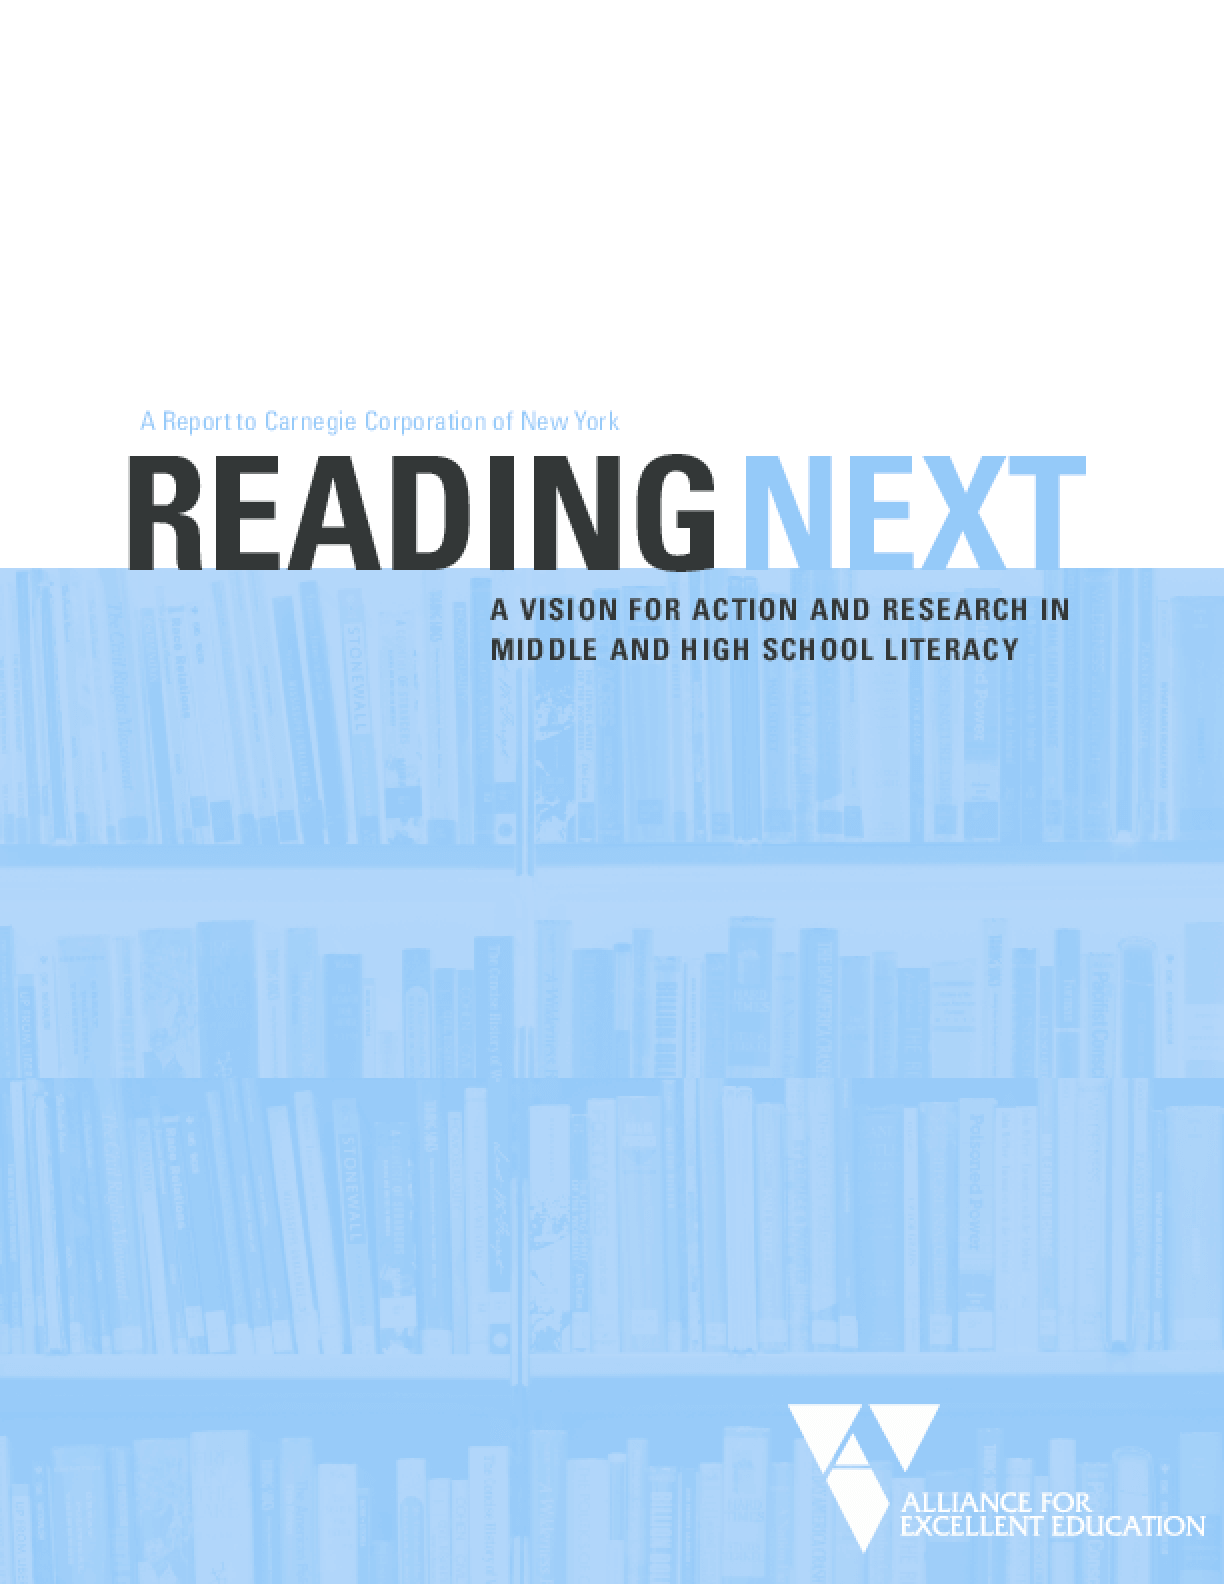 Reading Next: A Vision for Action and Research in Middle and High School Literacy